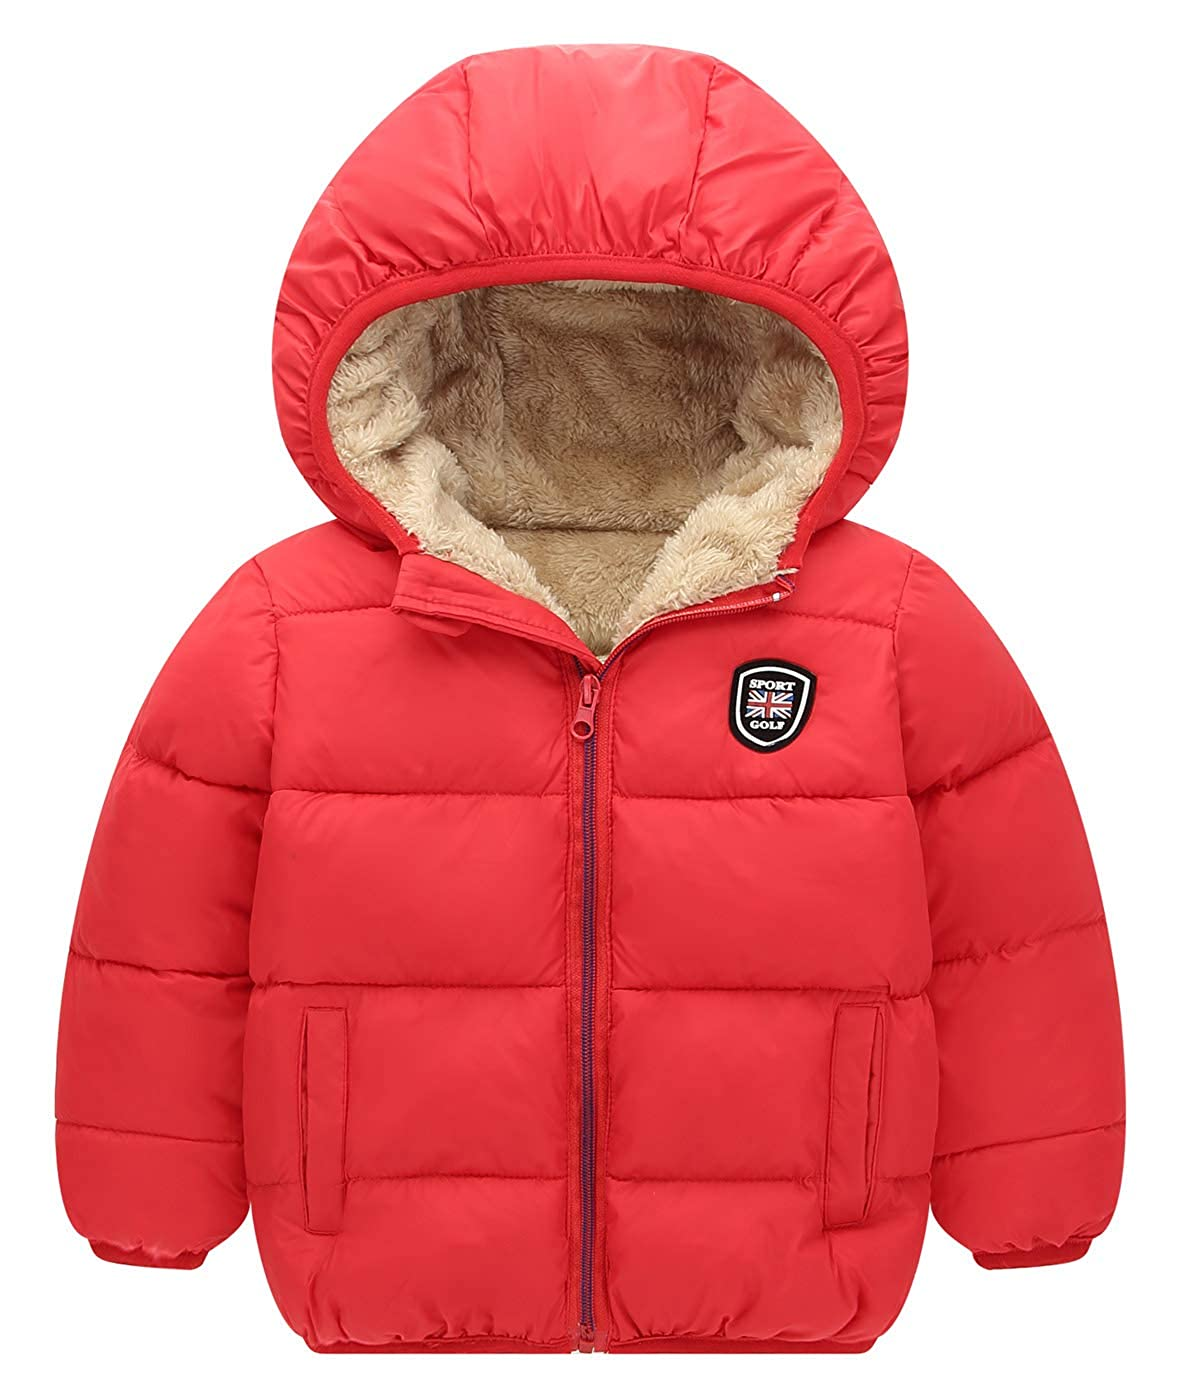 Happy Cherry Girls Down Jacket Boys Hooded Winter Warm Coat Puffer Outerwear